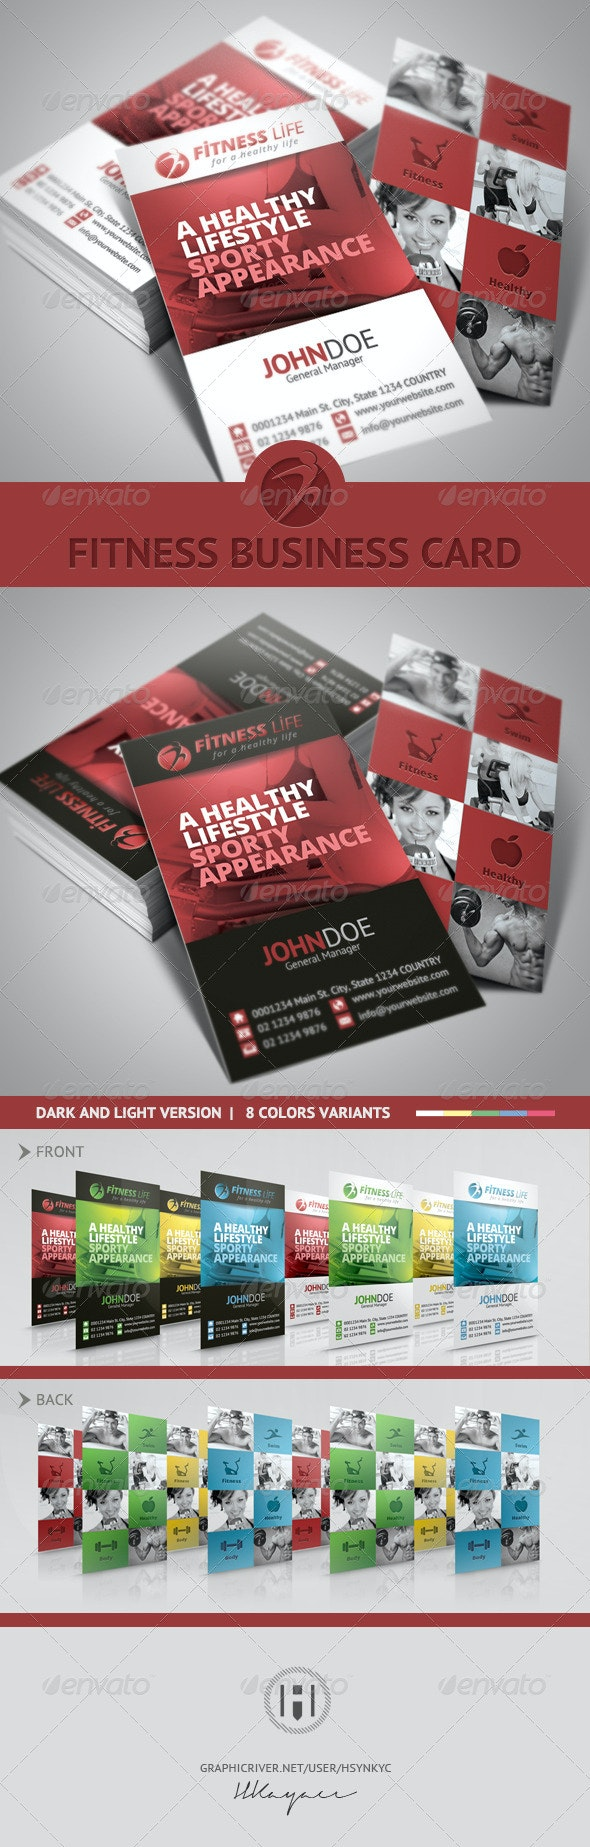 Fitness Business Card - Corporate Business Cards